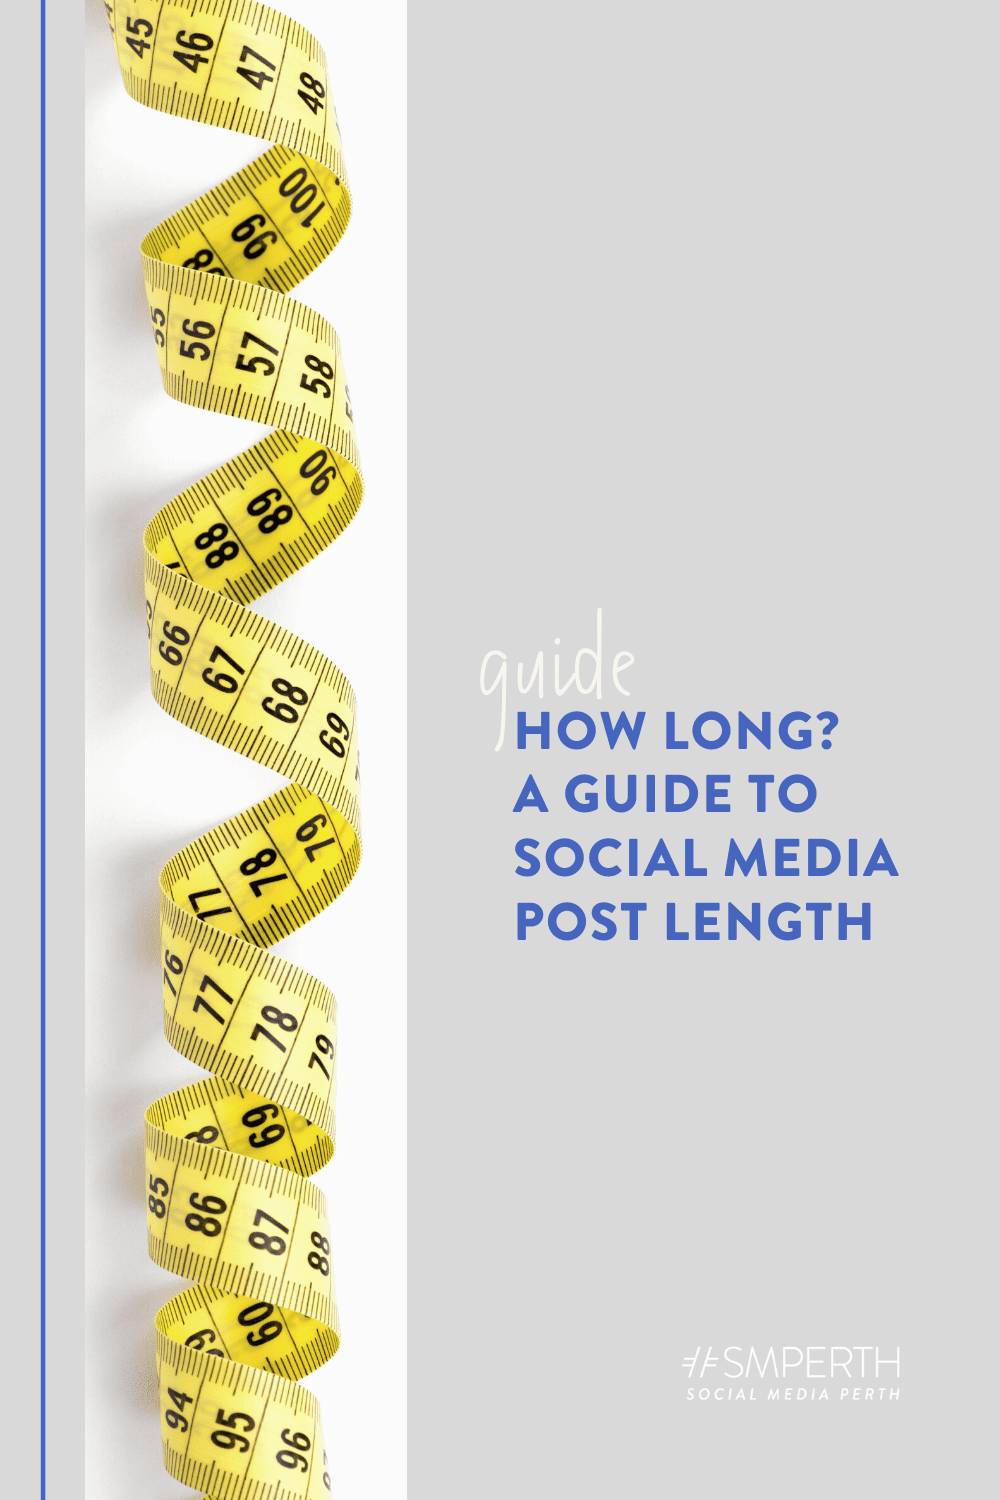 How Long? A Guide to Social Media Post Length